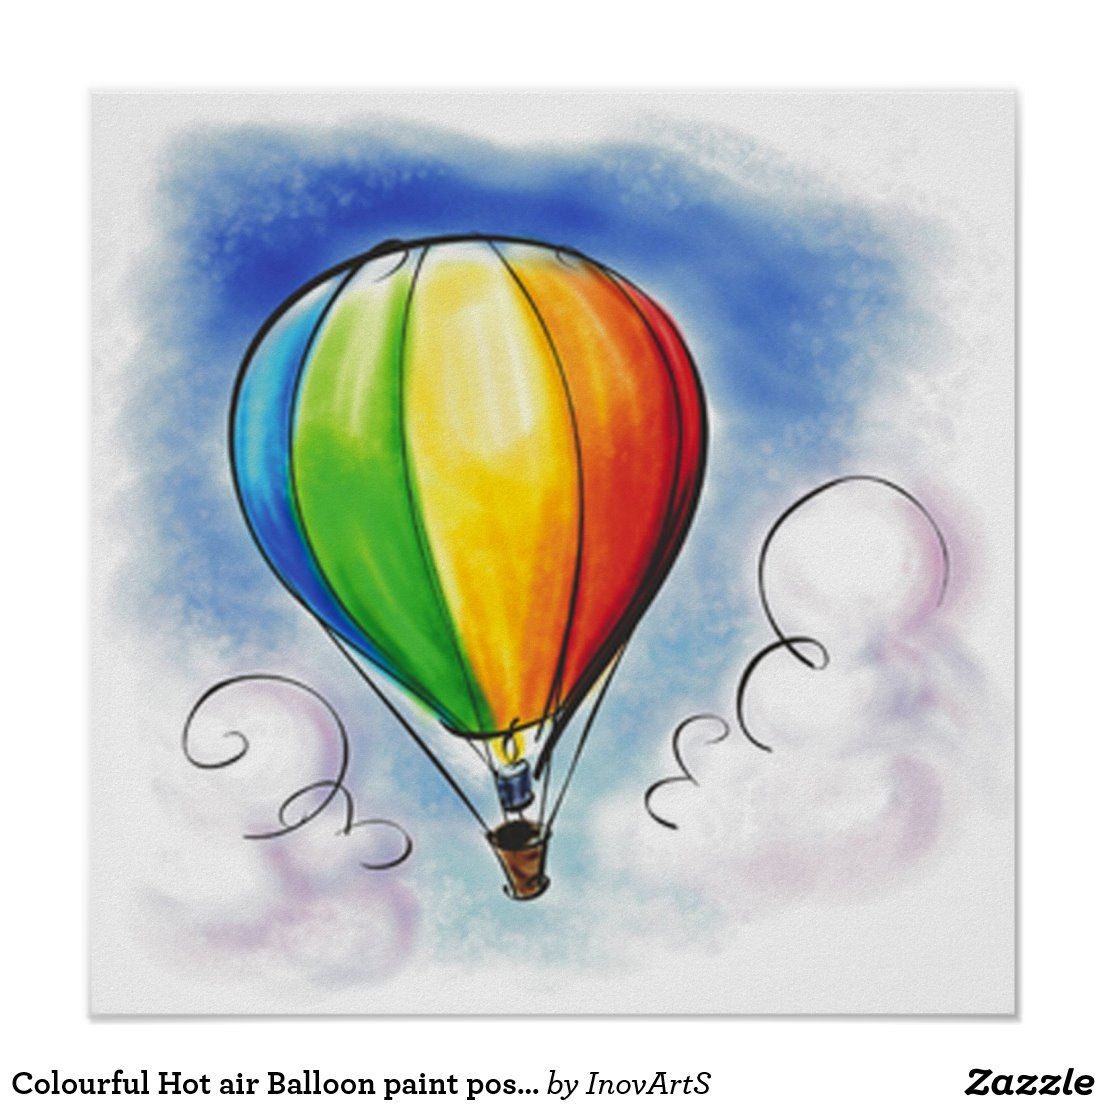 Colourful Hot air Balloon paint poster | Zazzle.com